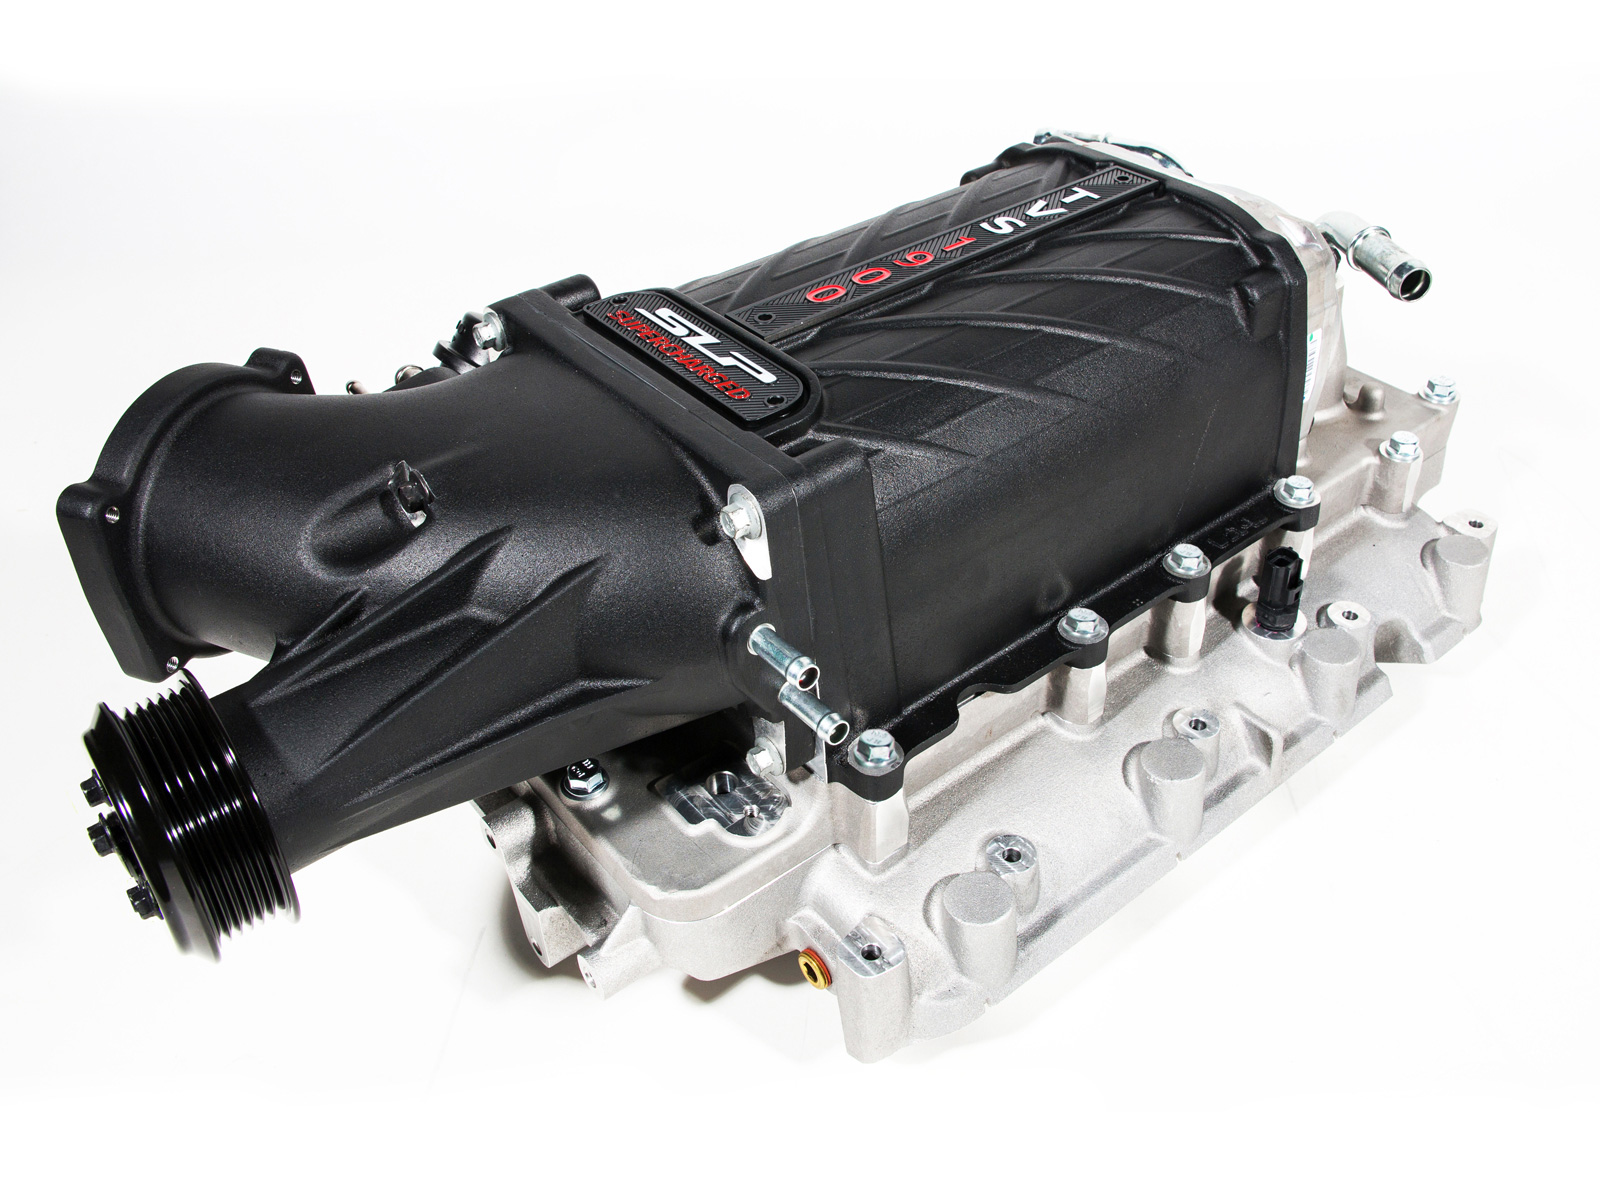 GM Truck Supercharger (2014-2016 6.2L V8)